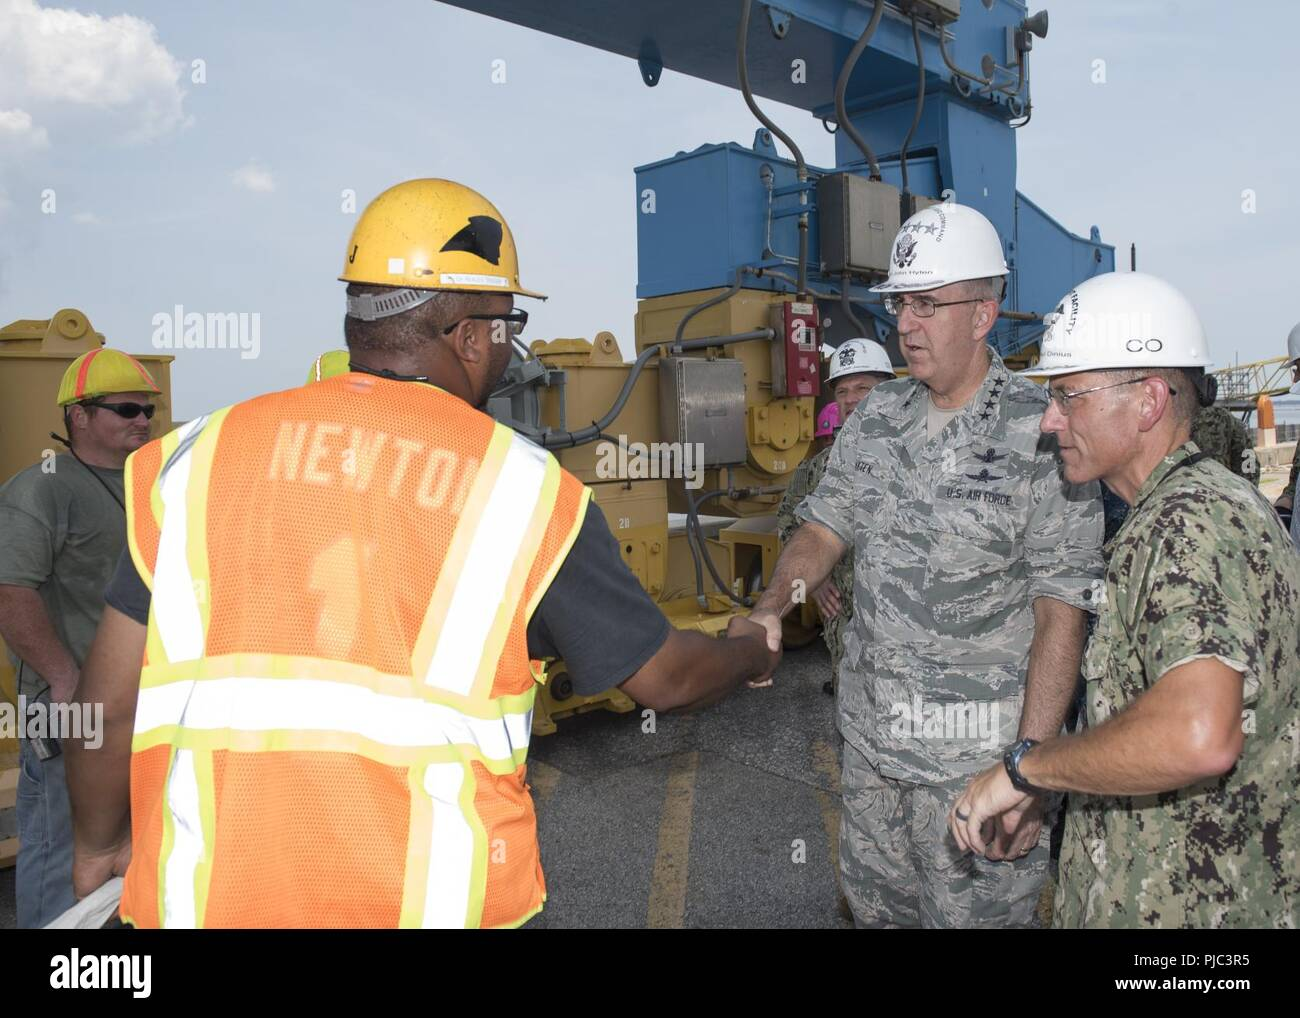 Gen. John E. Hyten, commander, U.S. Strategic Command (USSTRATCOM), discusses submarine maintenance with employees at Naval Submarine Base Kings Bay, Ga. The base is home to six of the Ohio-class ballistic missile submarines that make up the most survivable leg of the nuclear triad and support strategic deterrence. - Stock Image